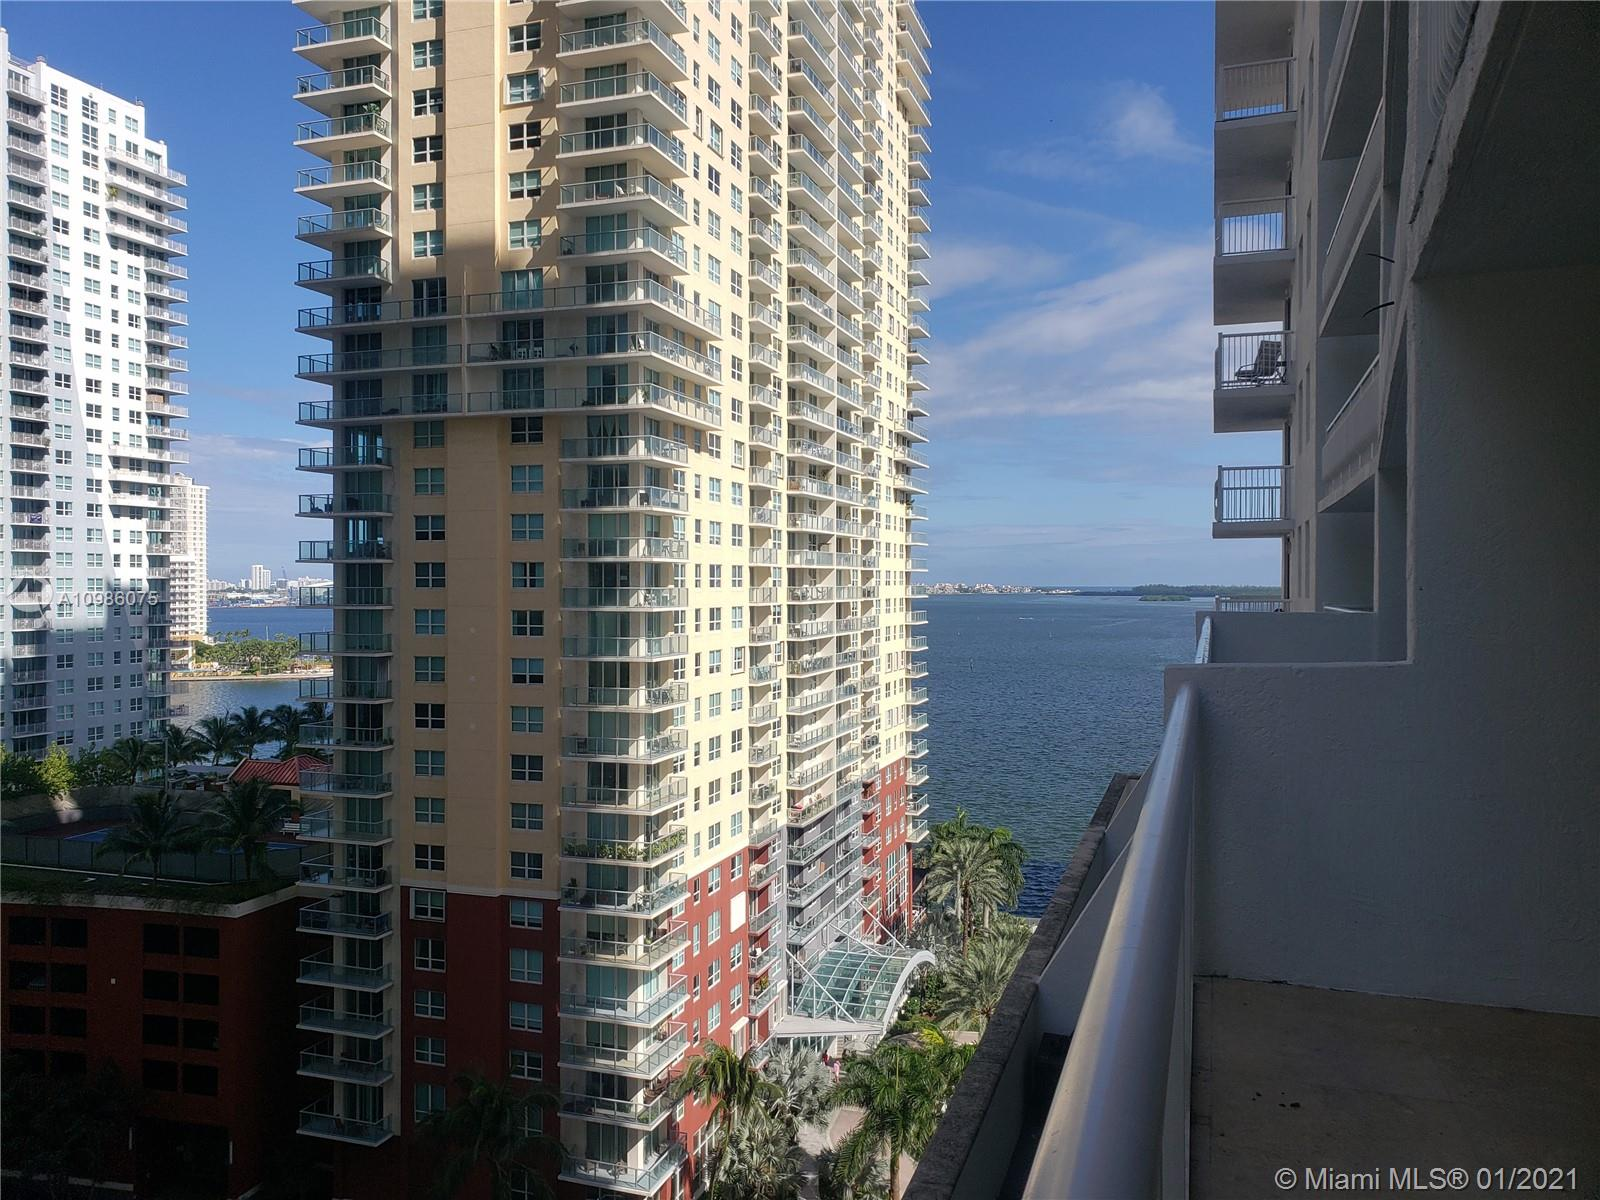 Club at Brickell #1508 - 1200 Brickell Bay Dr #1508, Miami, FL 33131